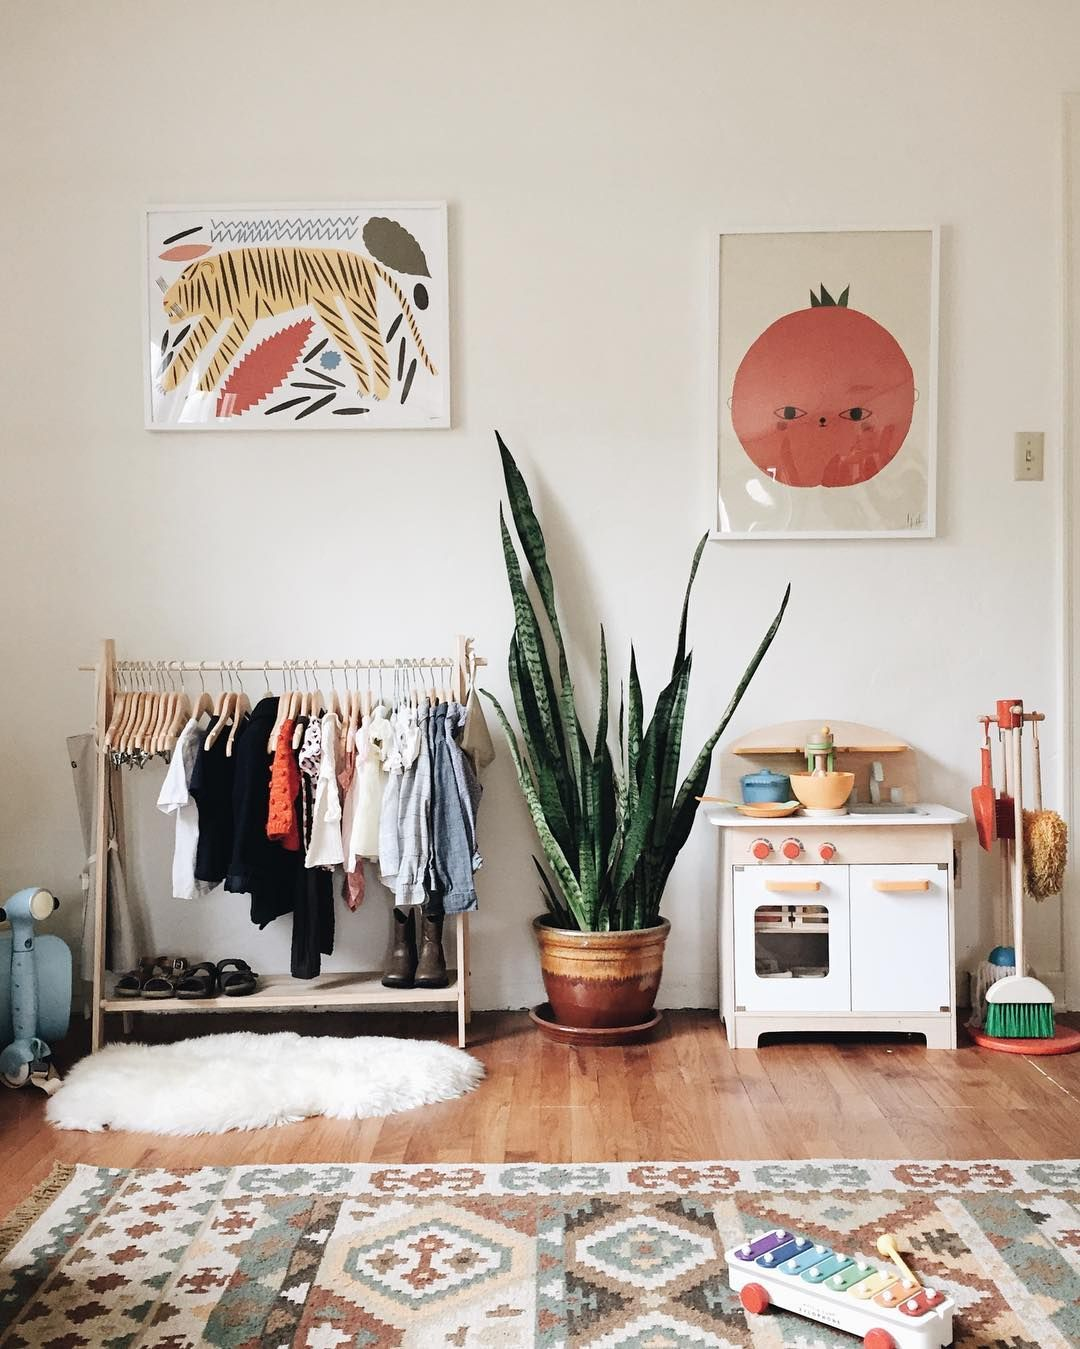 Pin by Justine Taylor on Kids\' Rooms | Pinterest | Chambre enfant ...